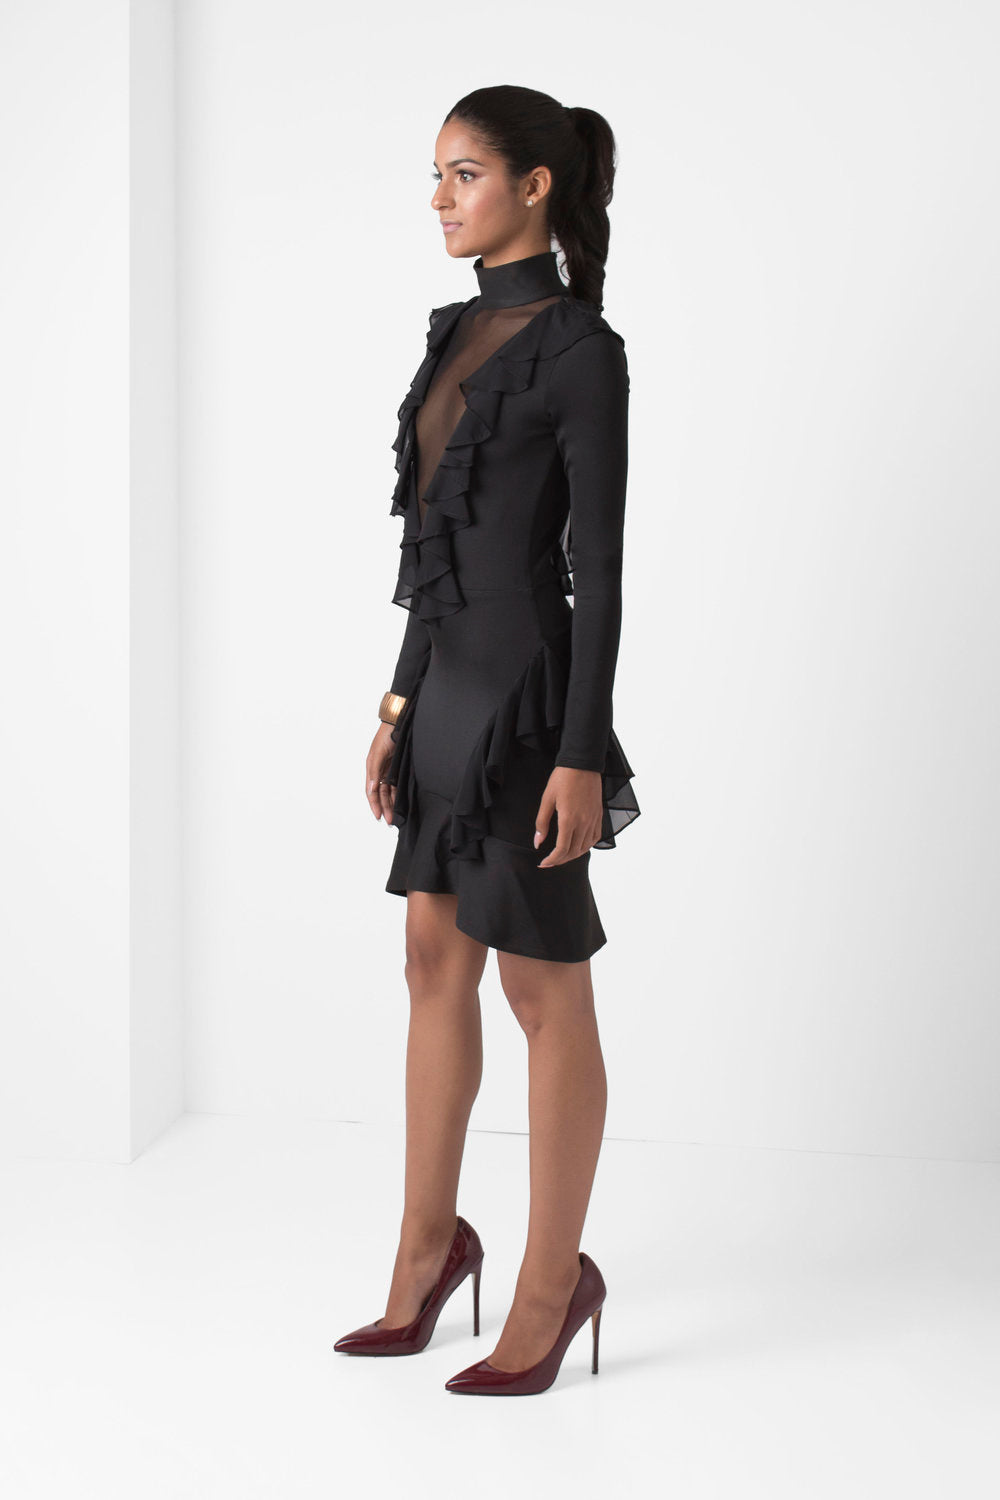 Black Long Sleeve Mini Dress Deep-V Mesh Ruffle Detail - pacorogiene